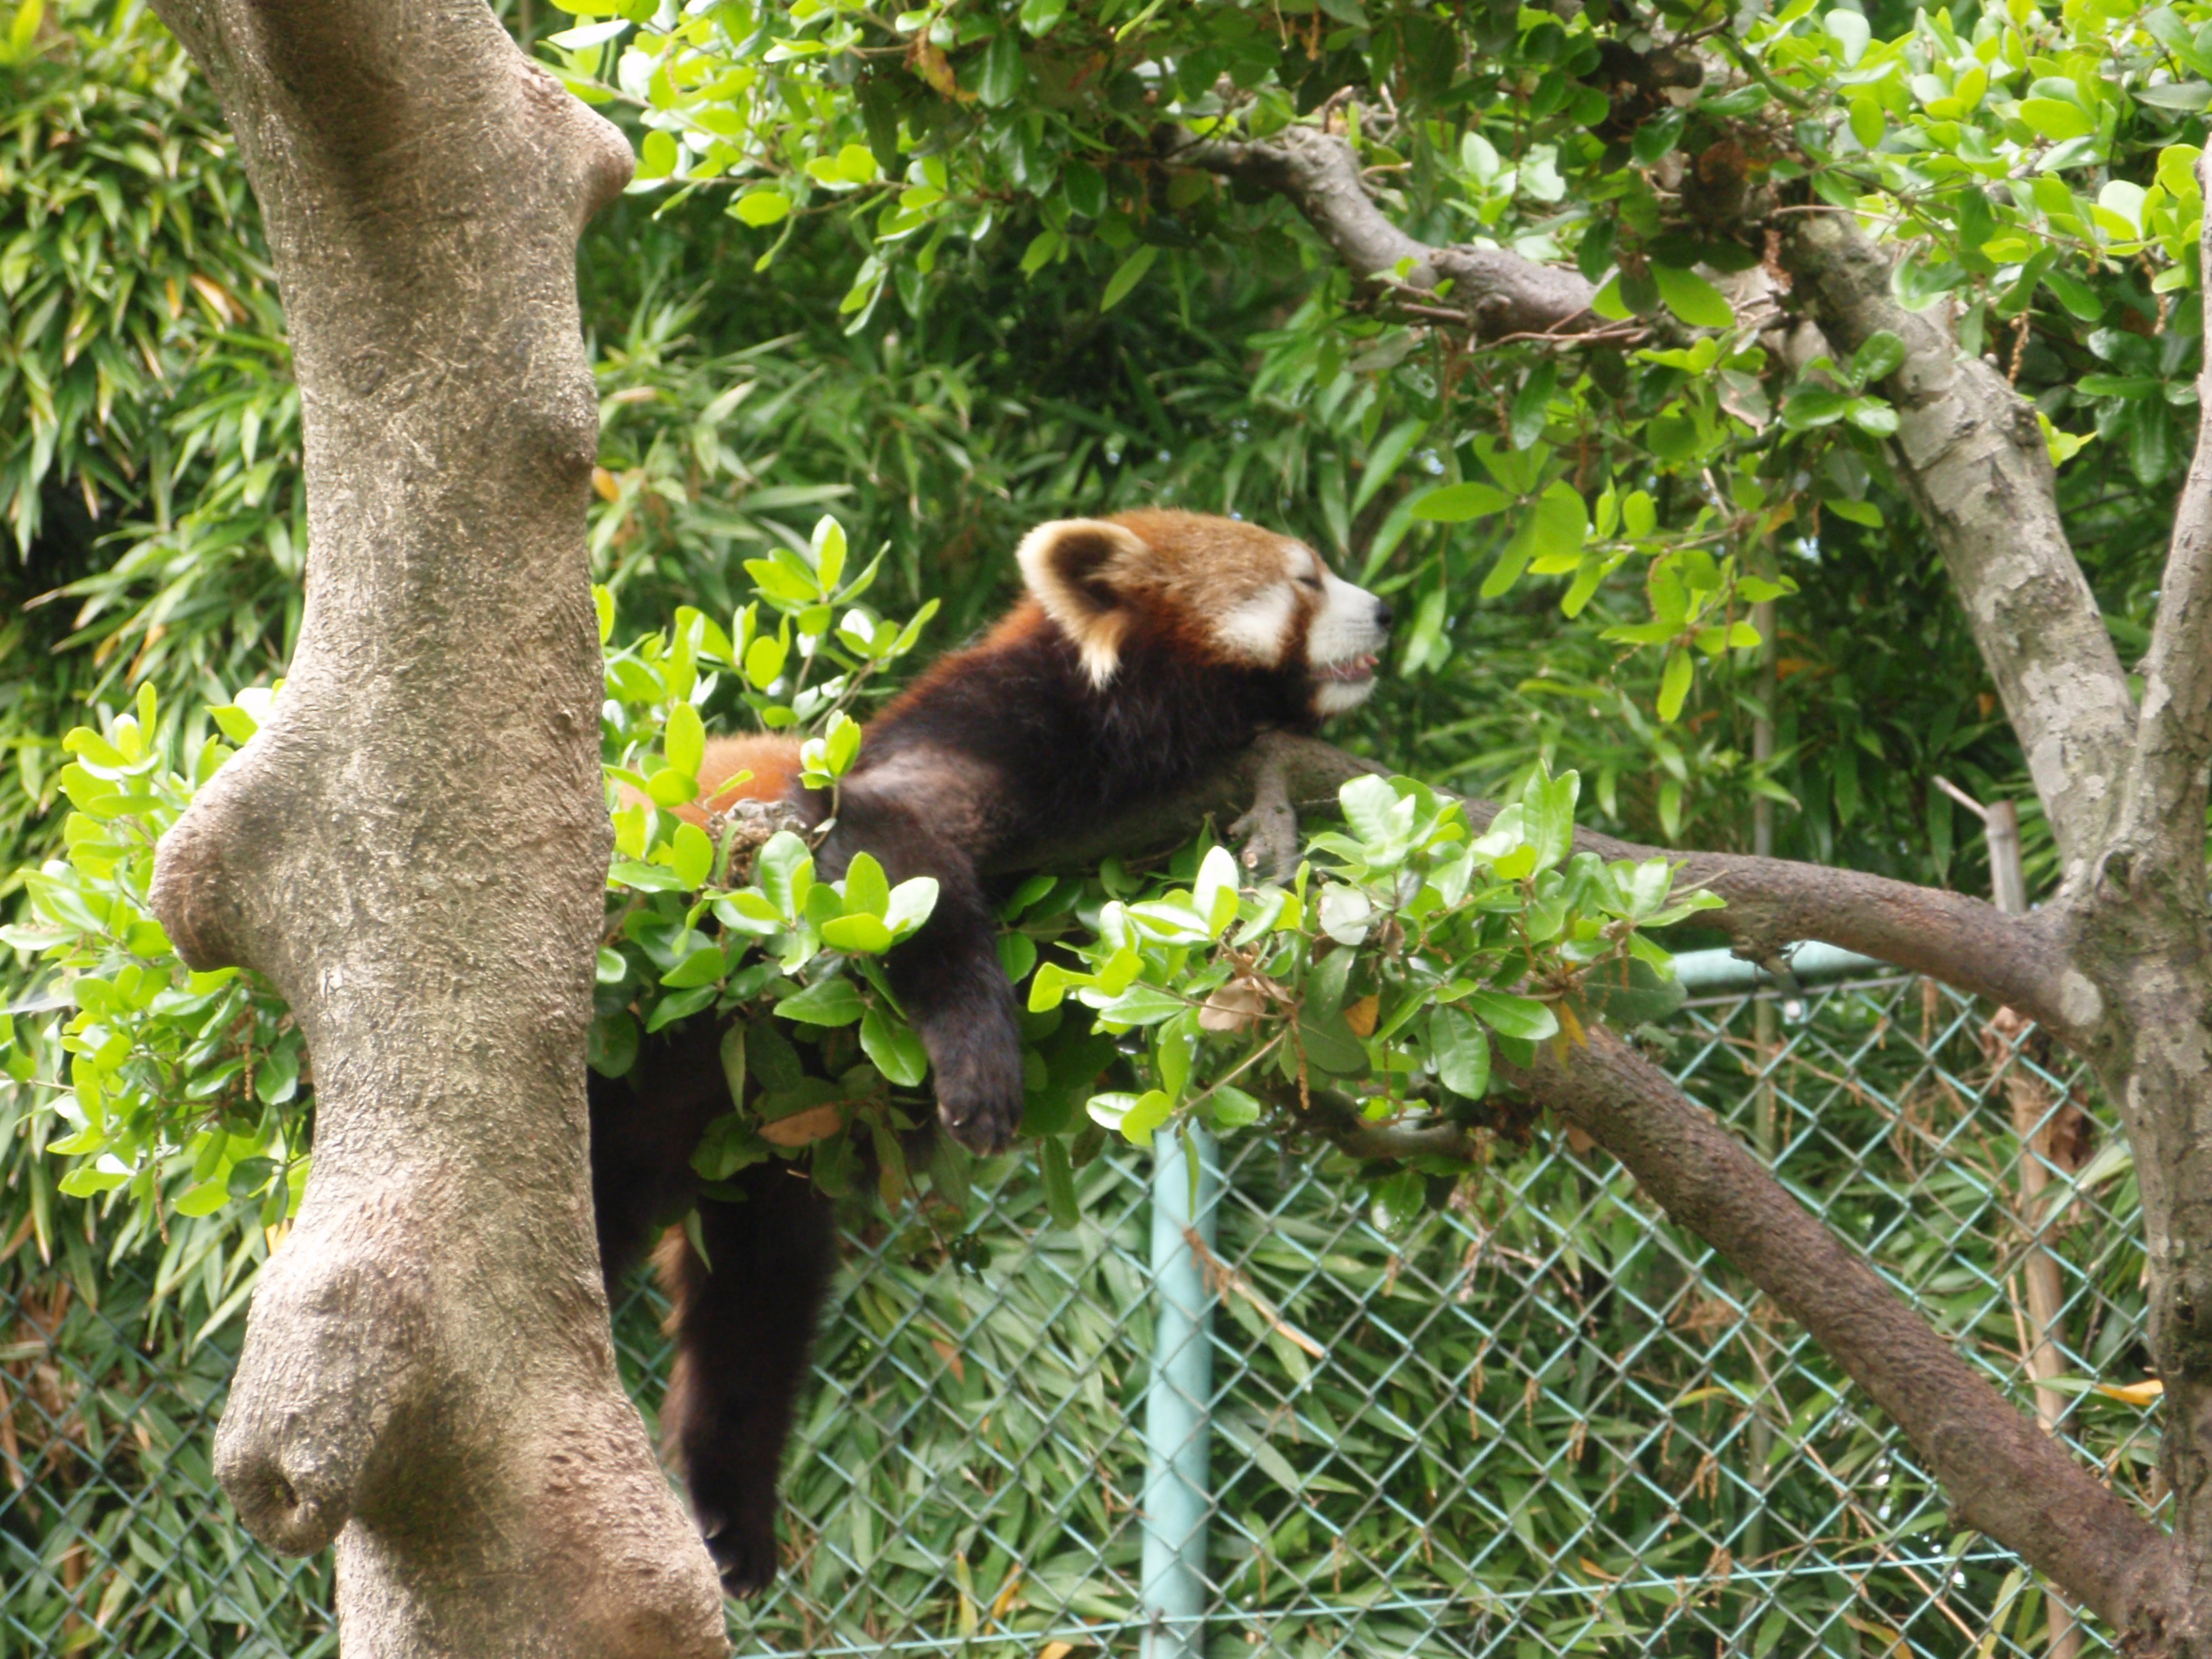 https://upload.wikimedia.org/wikipedia/commons/7/71/Red_Panda01.JPG